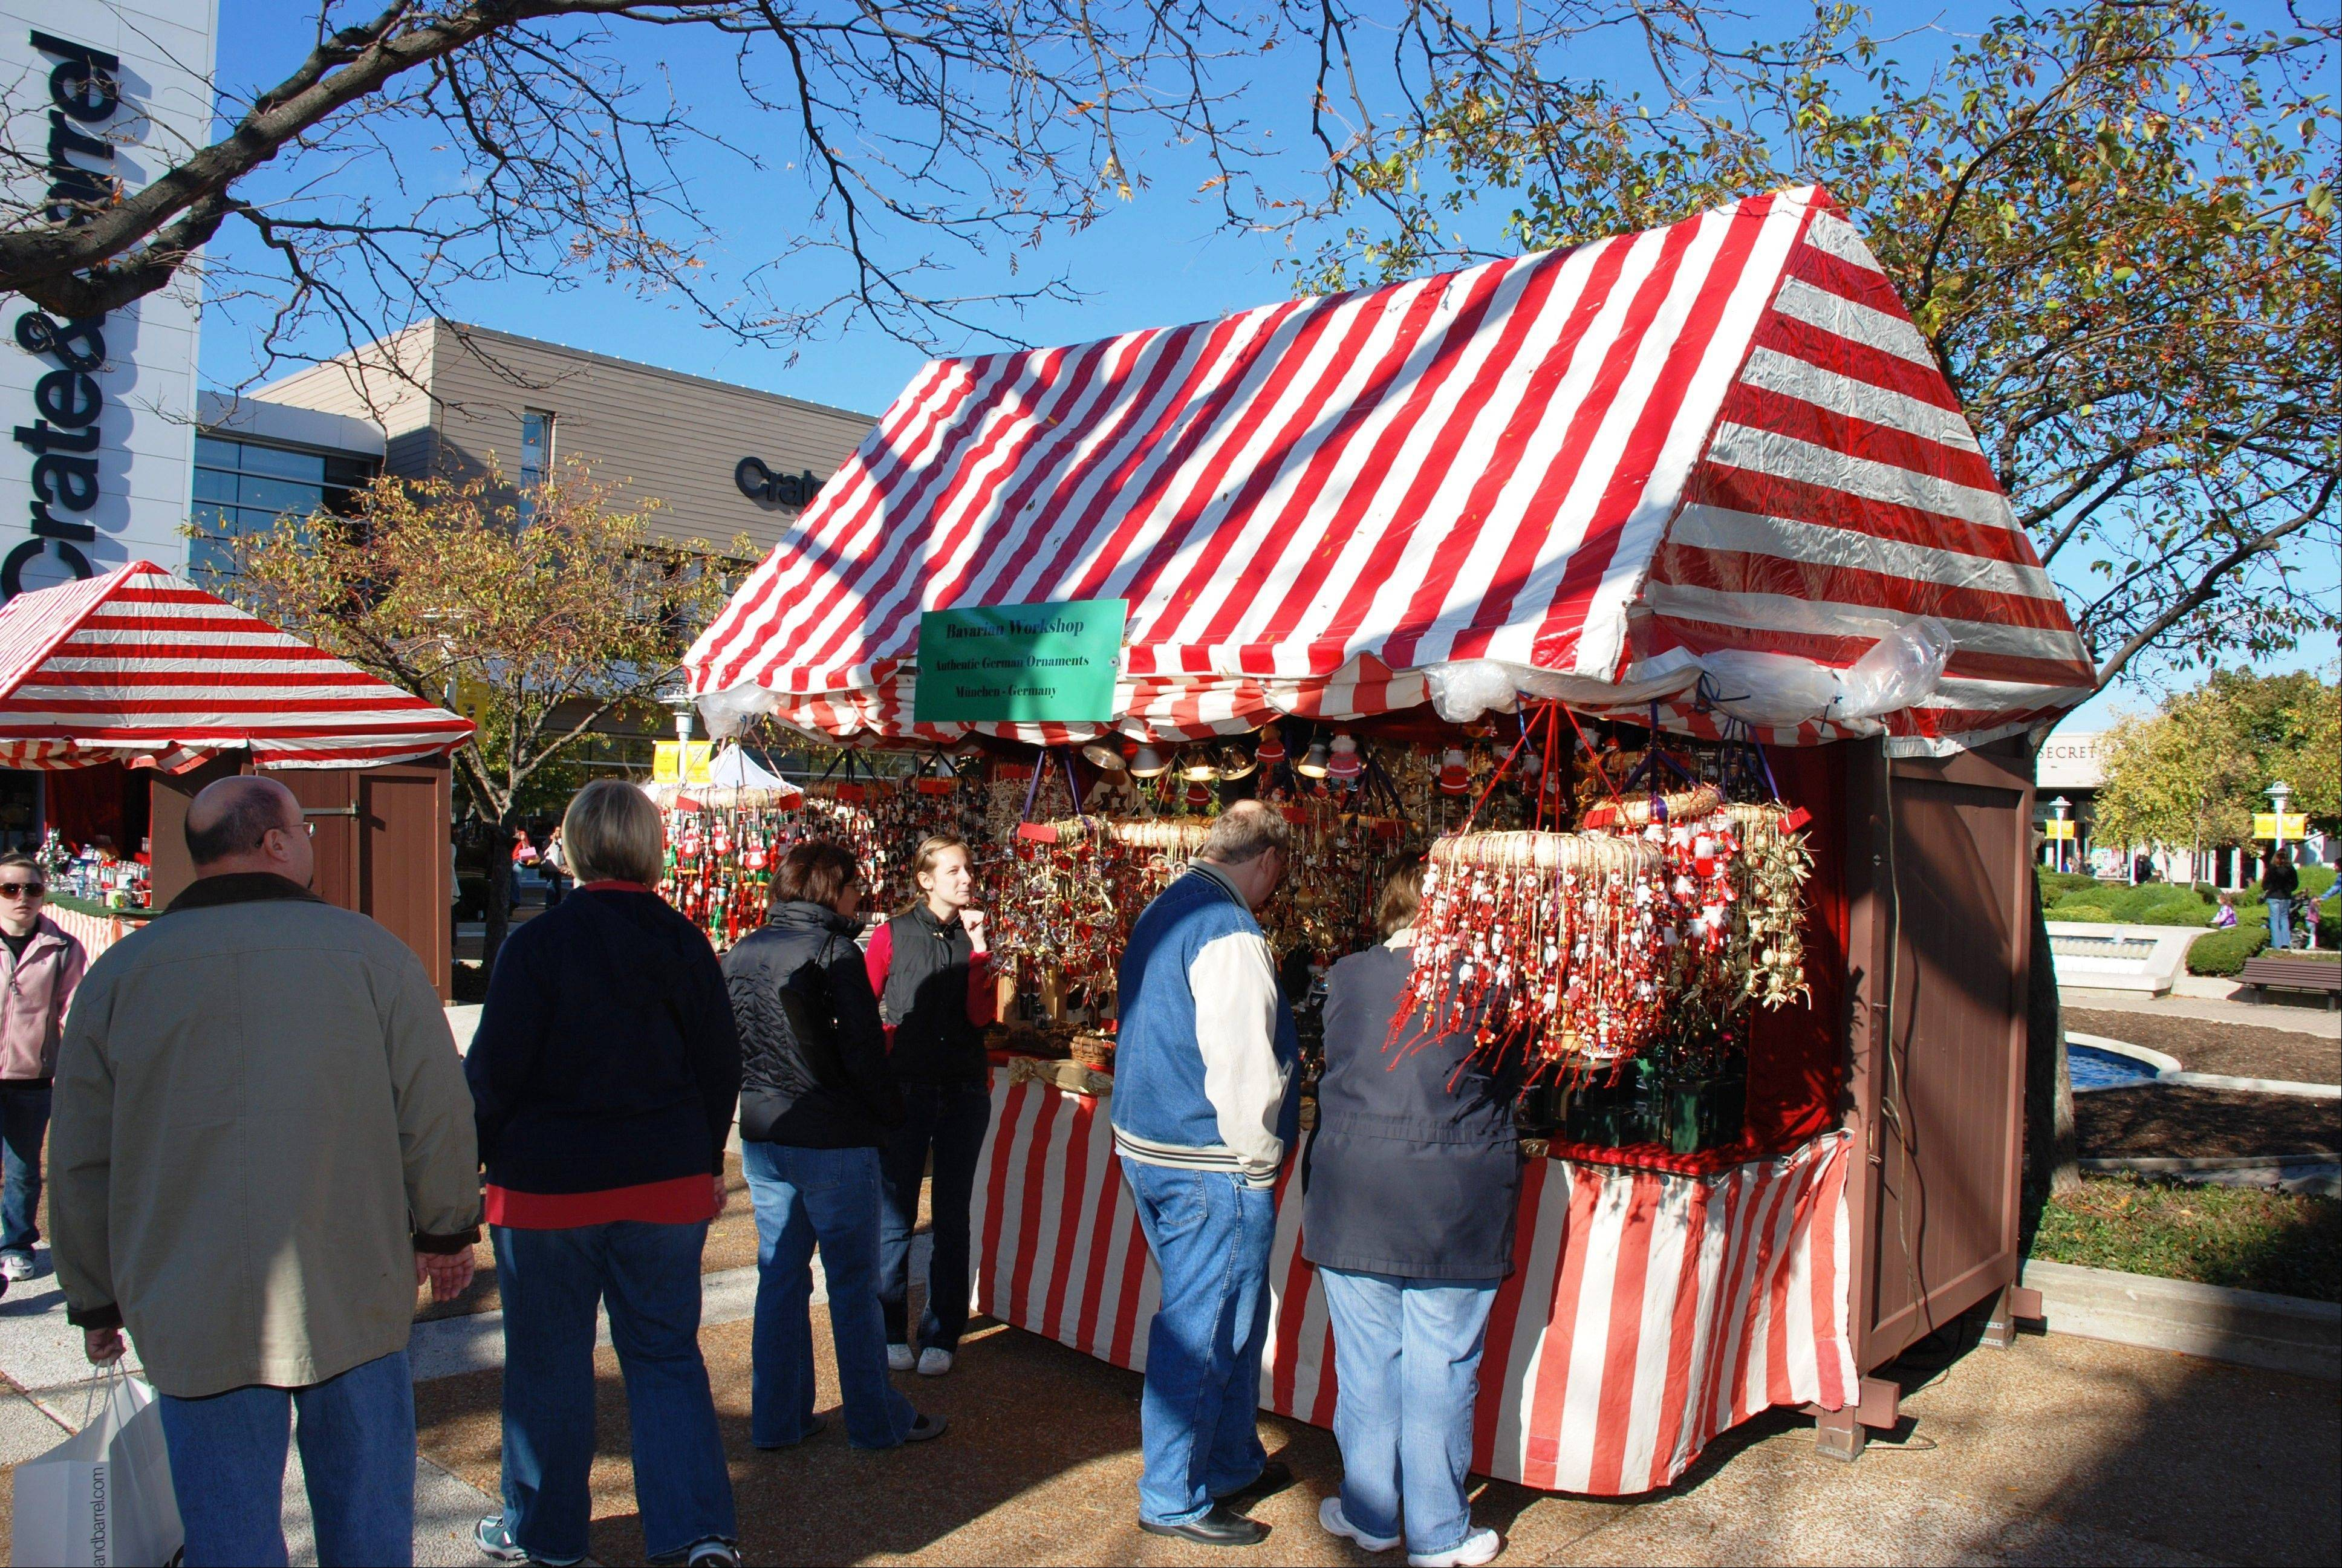 Craft fairs dot the suburbs from now through the December holidays -- a perfect place to go shopping for some creative, handmade gifts.